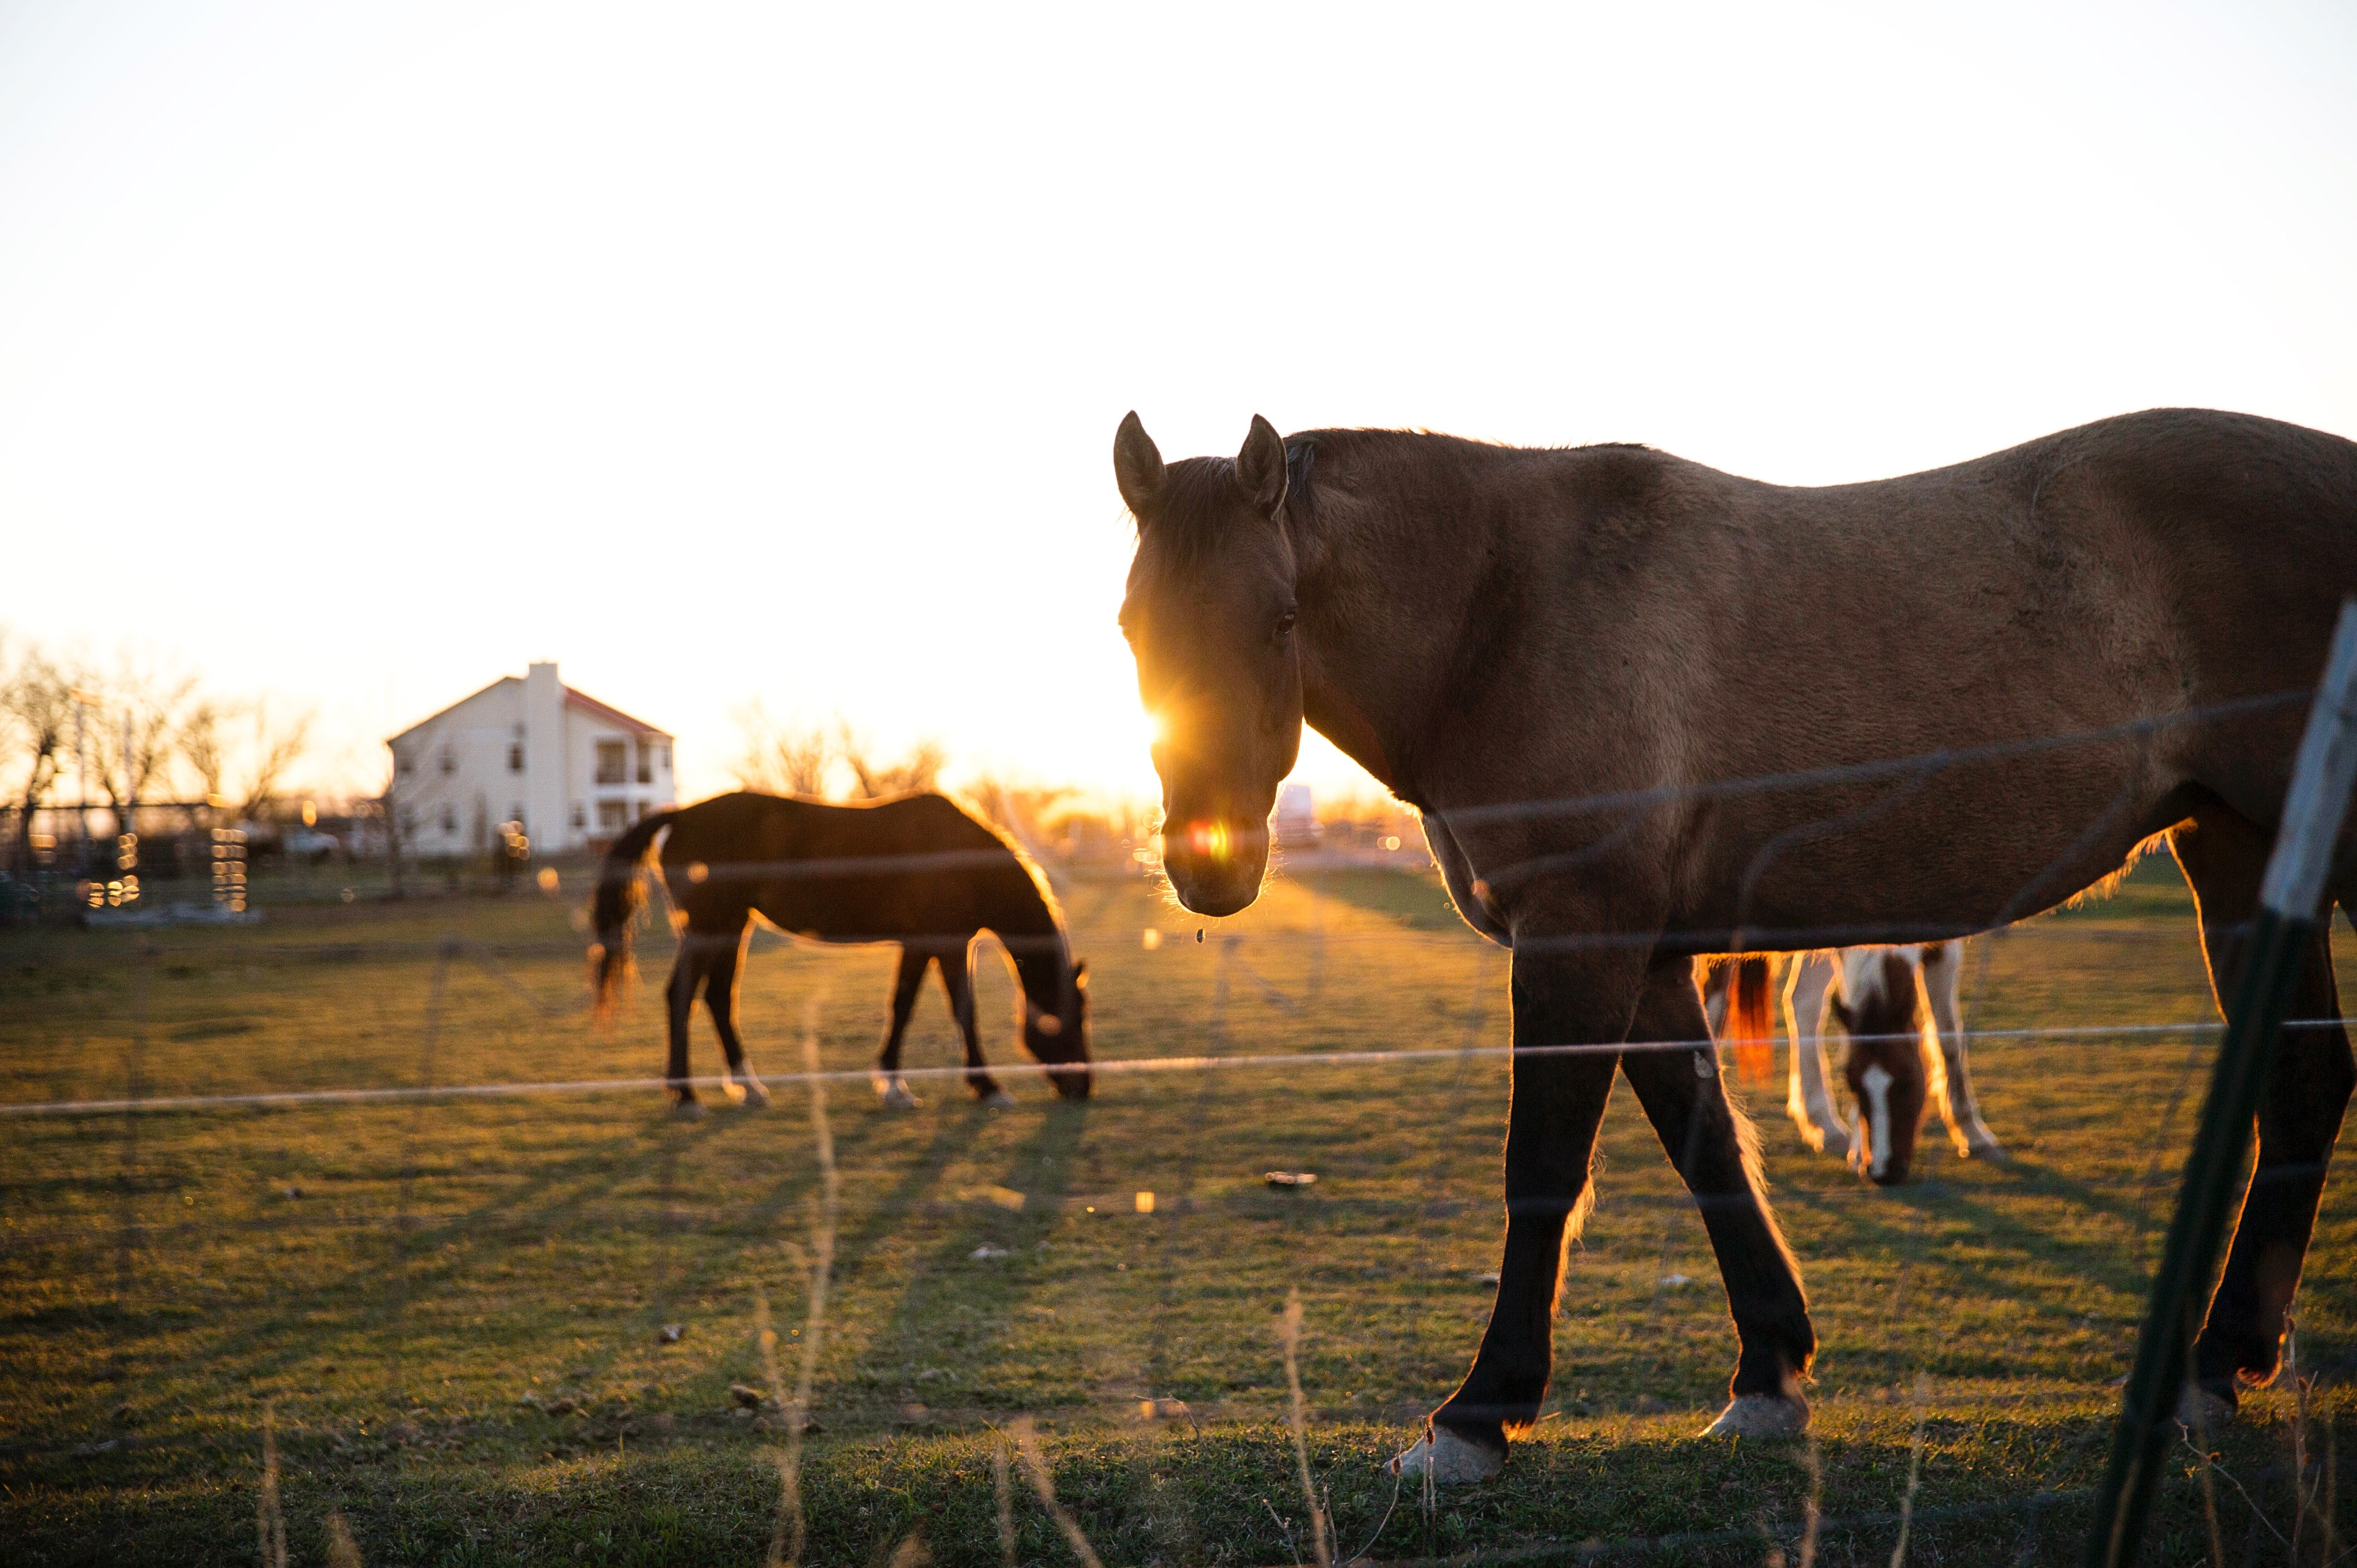 Horses in an enclosure with a house and the setting sun at the back